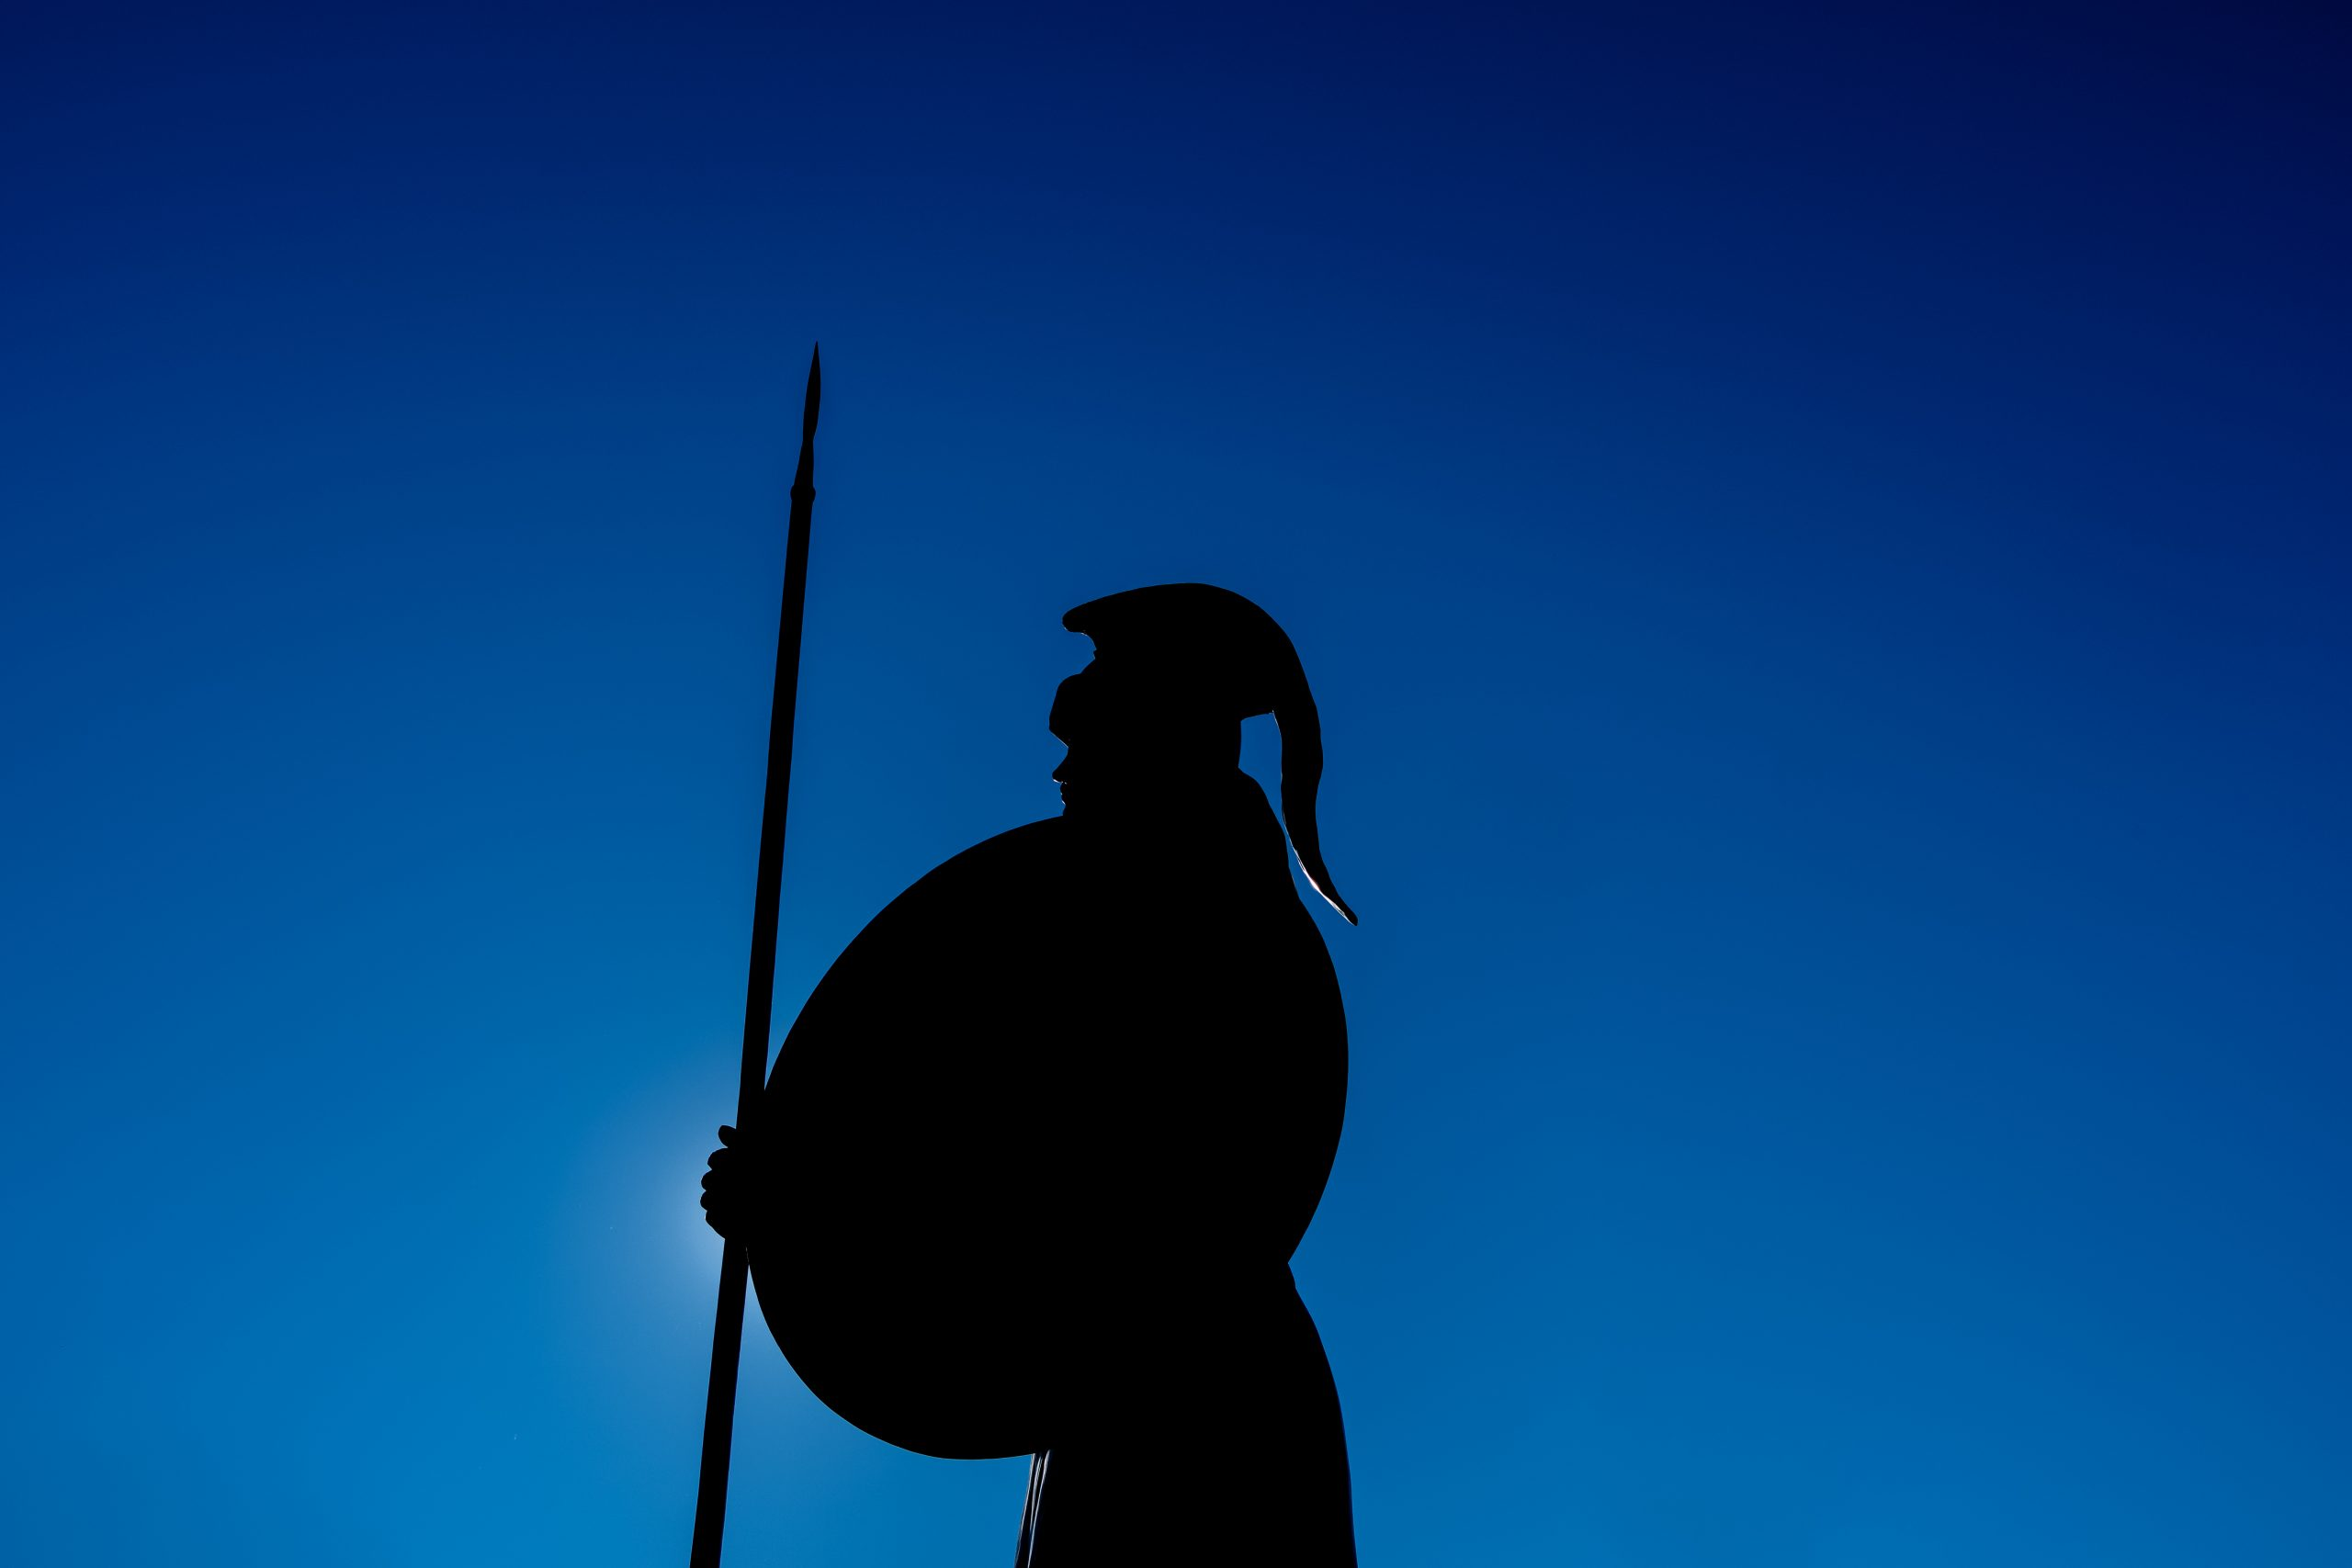 Silhouette of Spartan